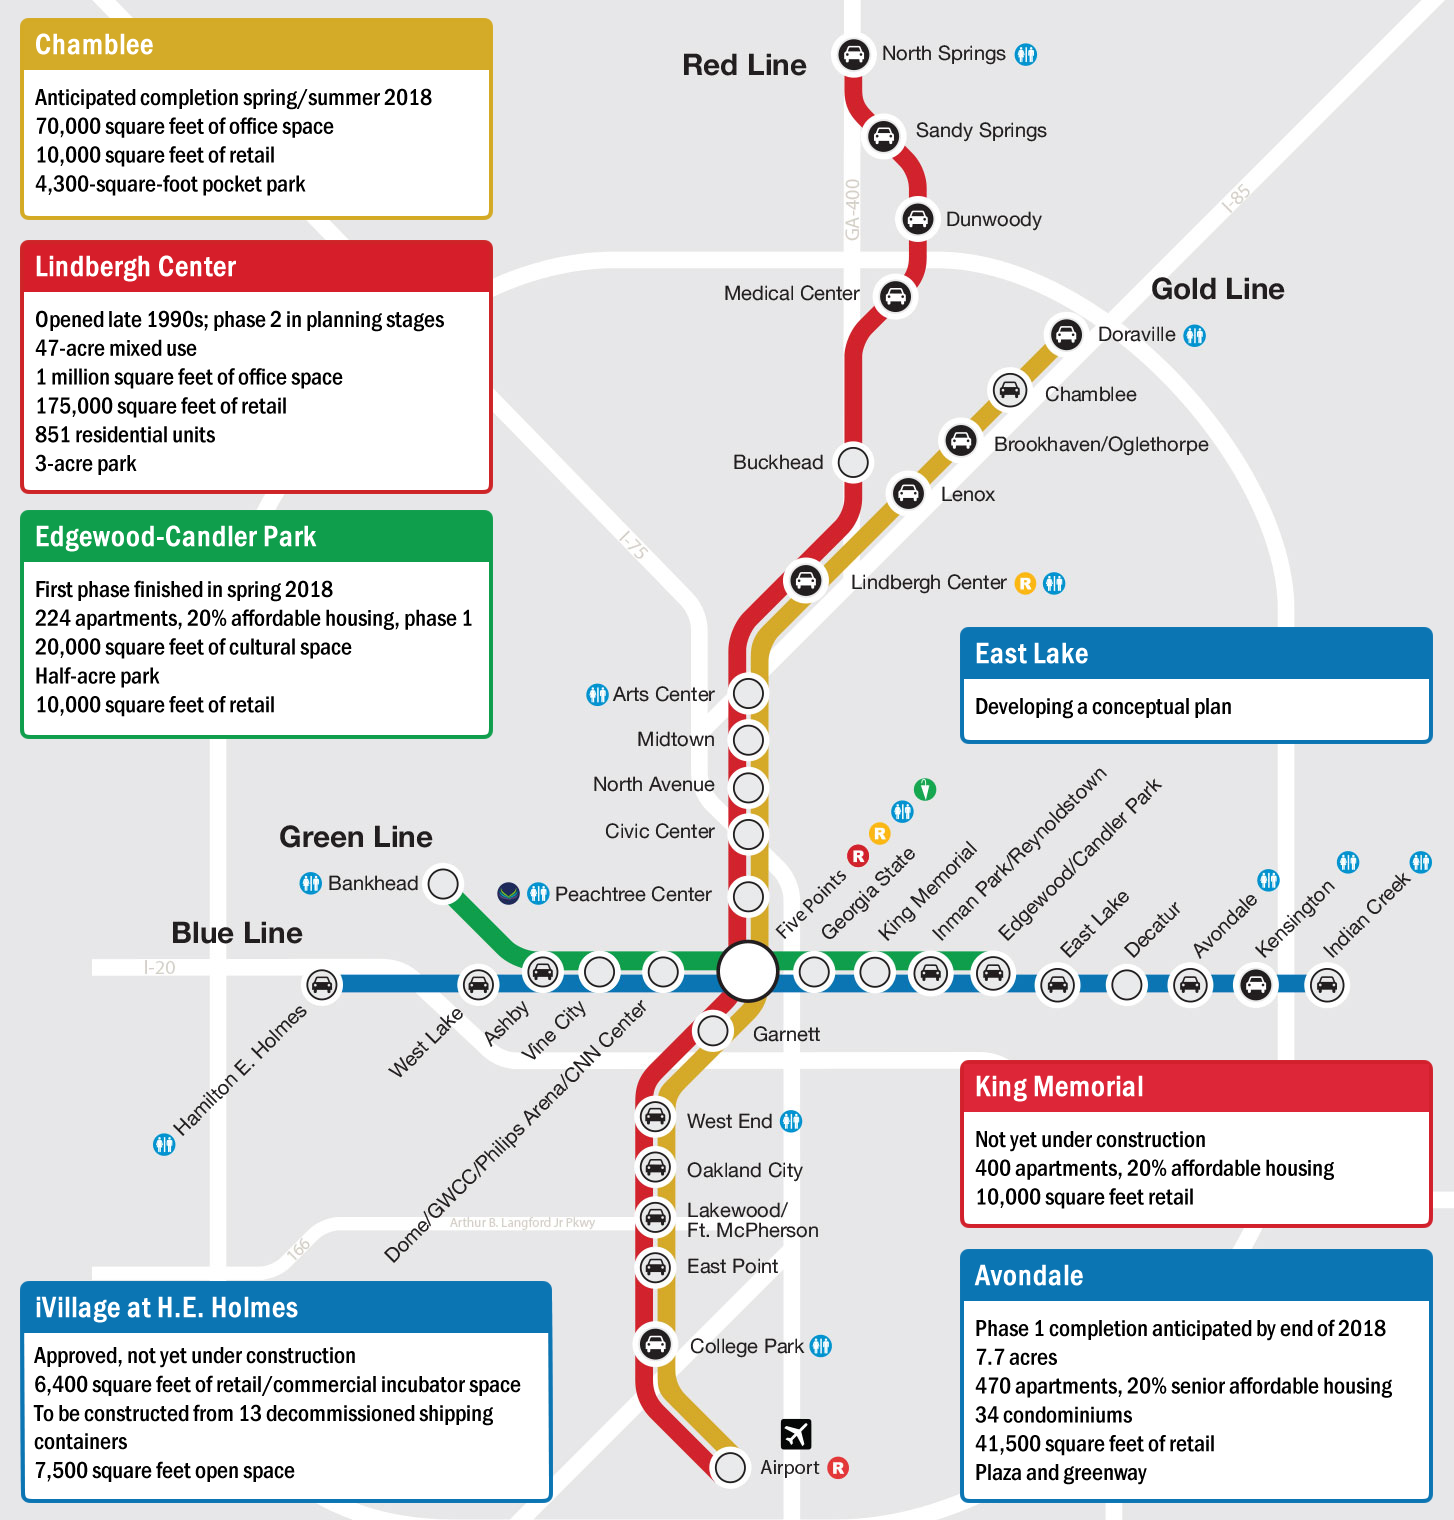 map of the MARTA transit system